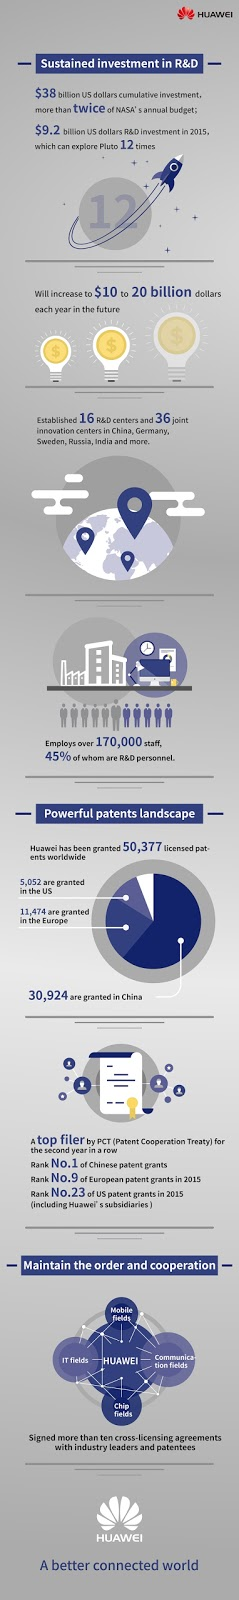 @HuaweiZA Patent Infographics #thelifesway #photoyatra #Huawei